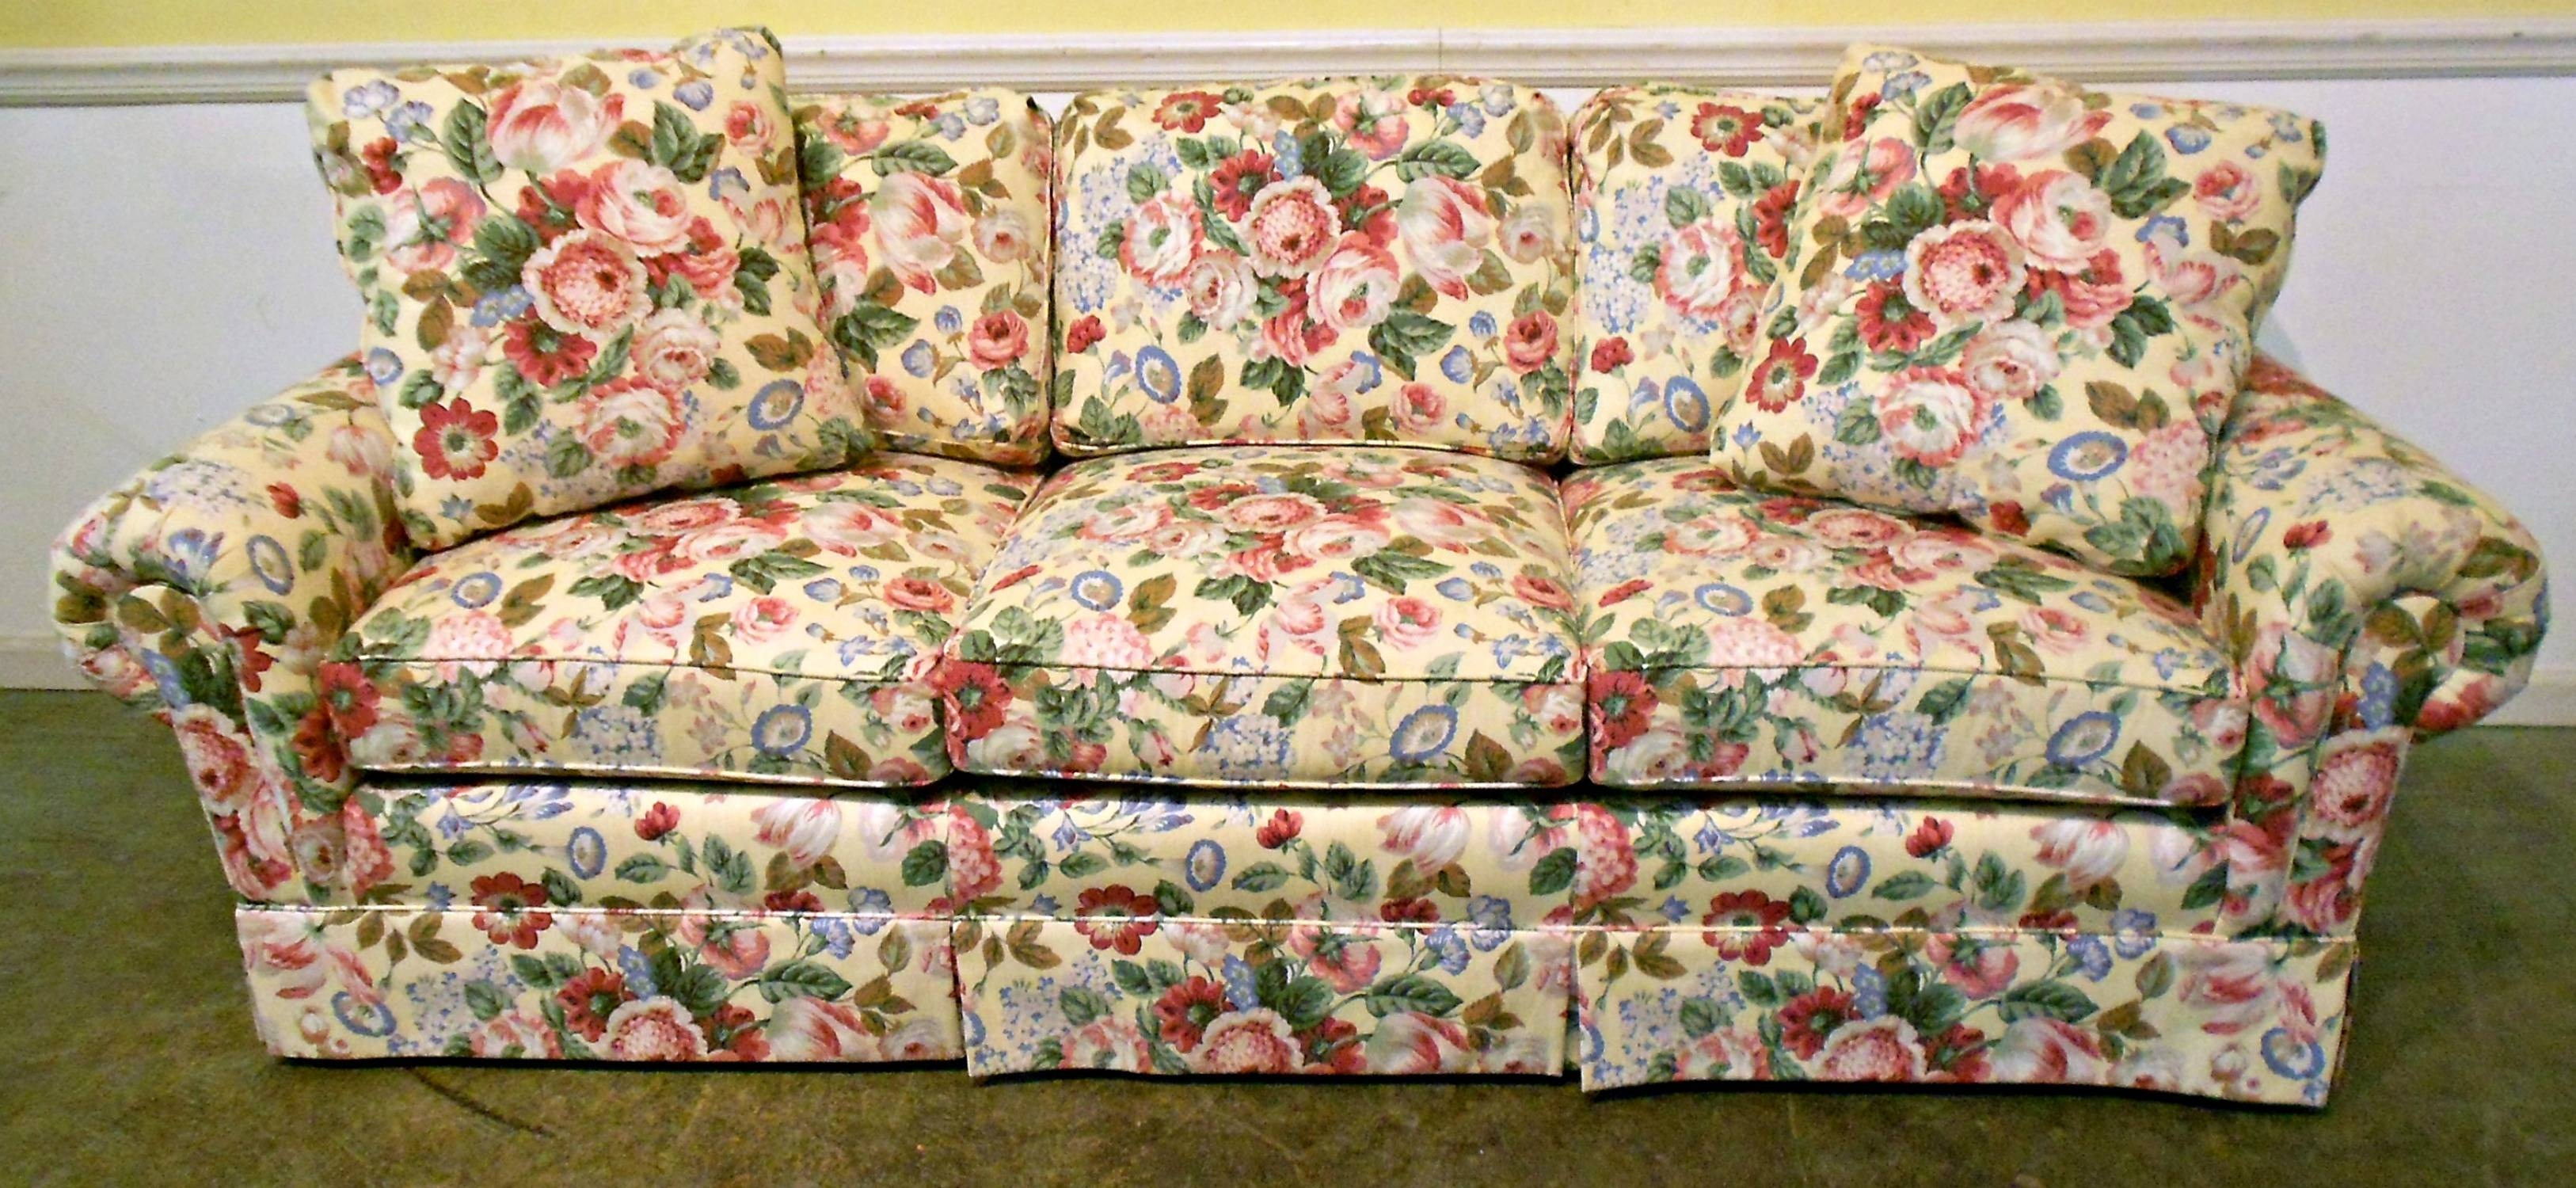 Terrific Floral Print Sofas 9 Floral Print Sofa Beds Now I M Not regarding Floral Sofas (Image 14 of 15)